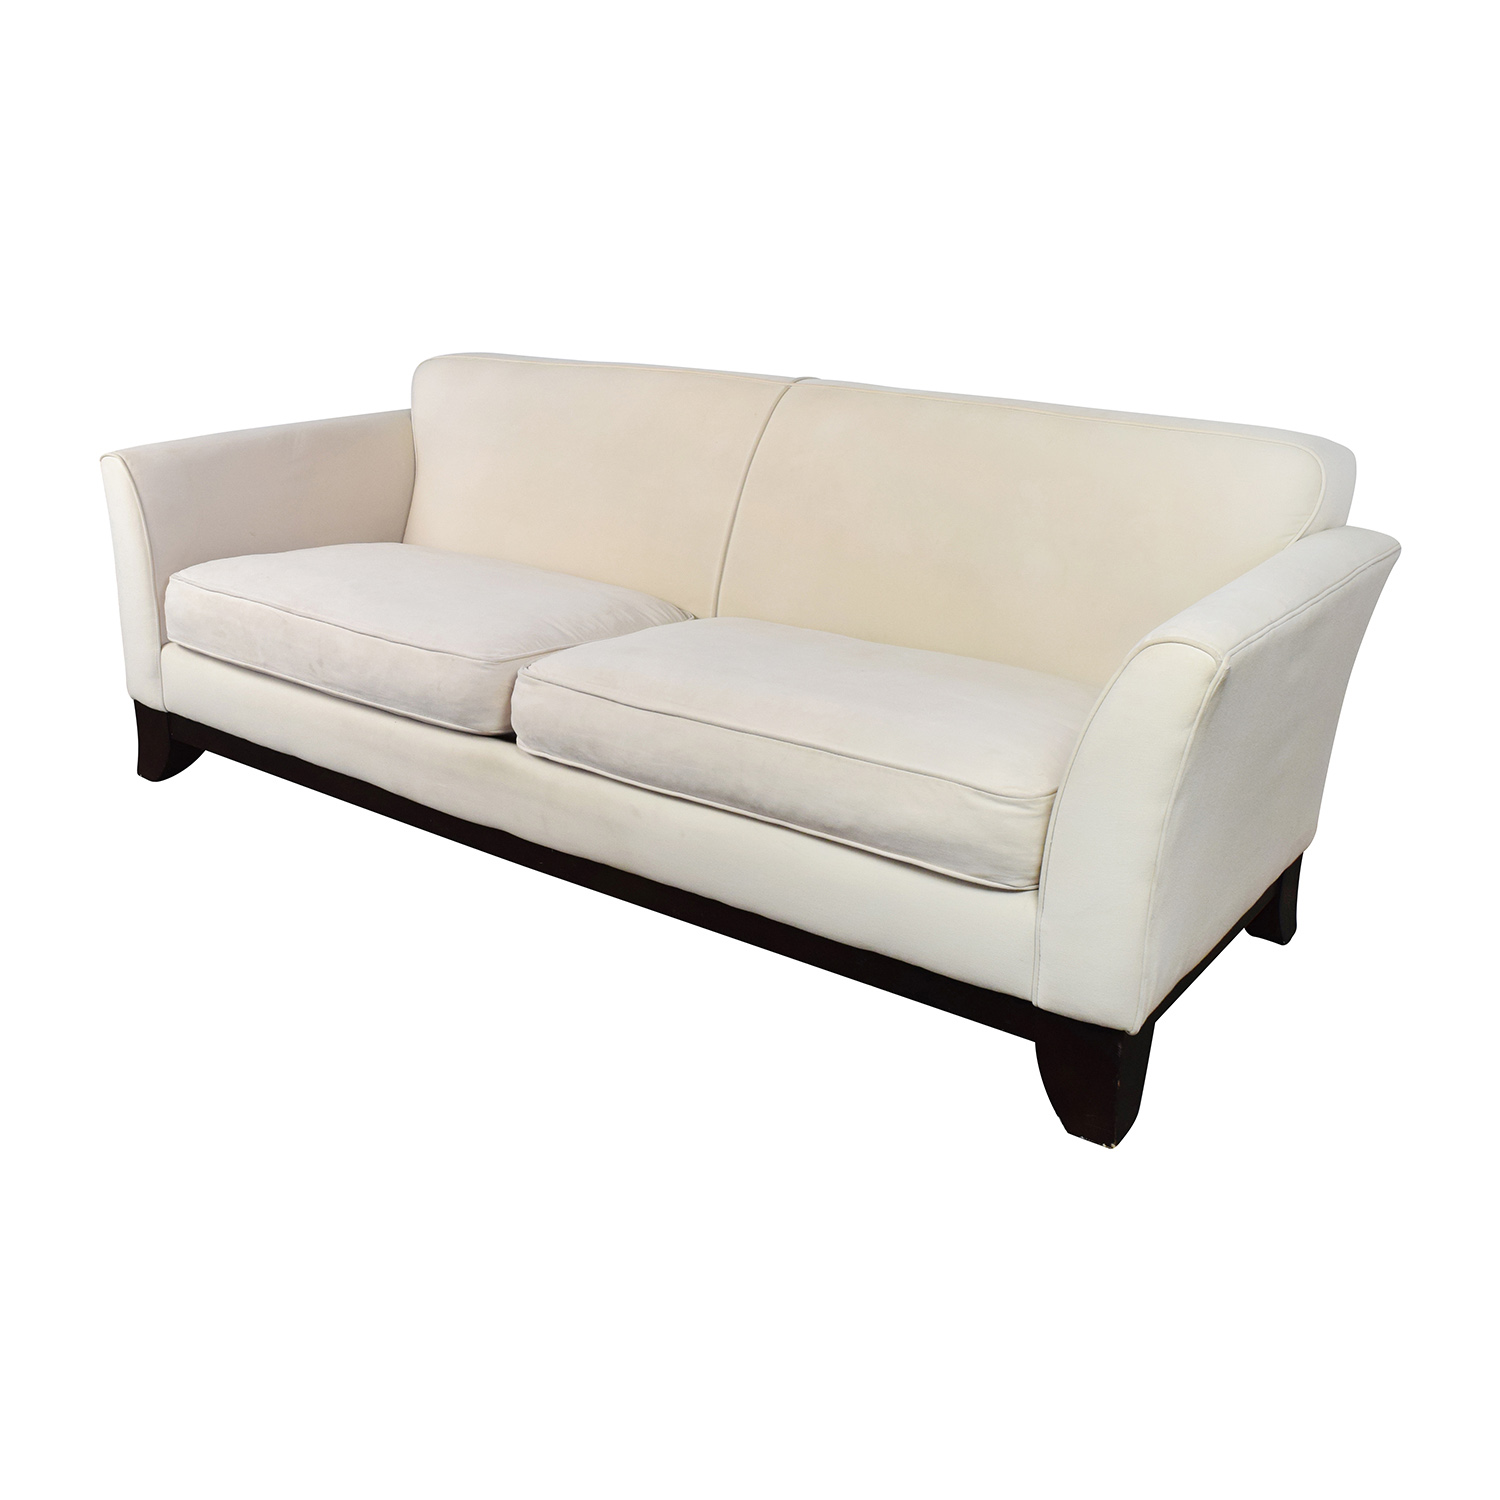 90 OFF Pottery Barn Pottery Barn Cream Couch Sofas : pottery barn cream couch from furnishare.com size 1500 x 1500 jpeg 219kB